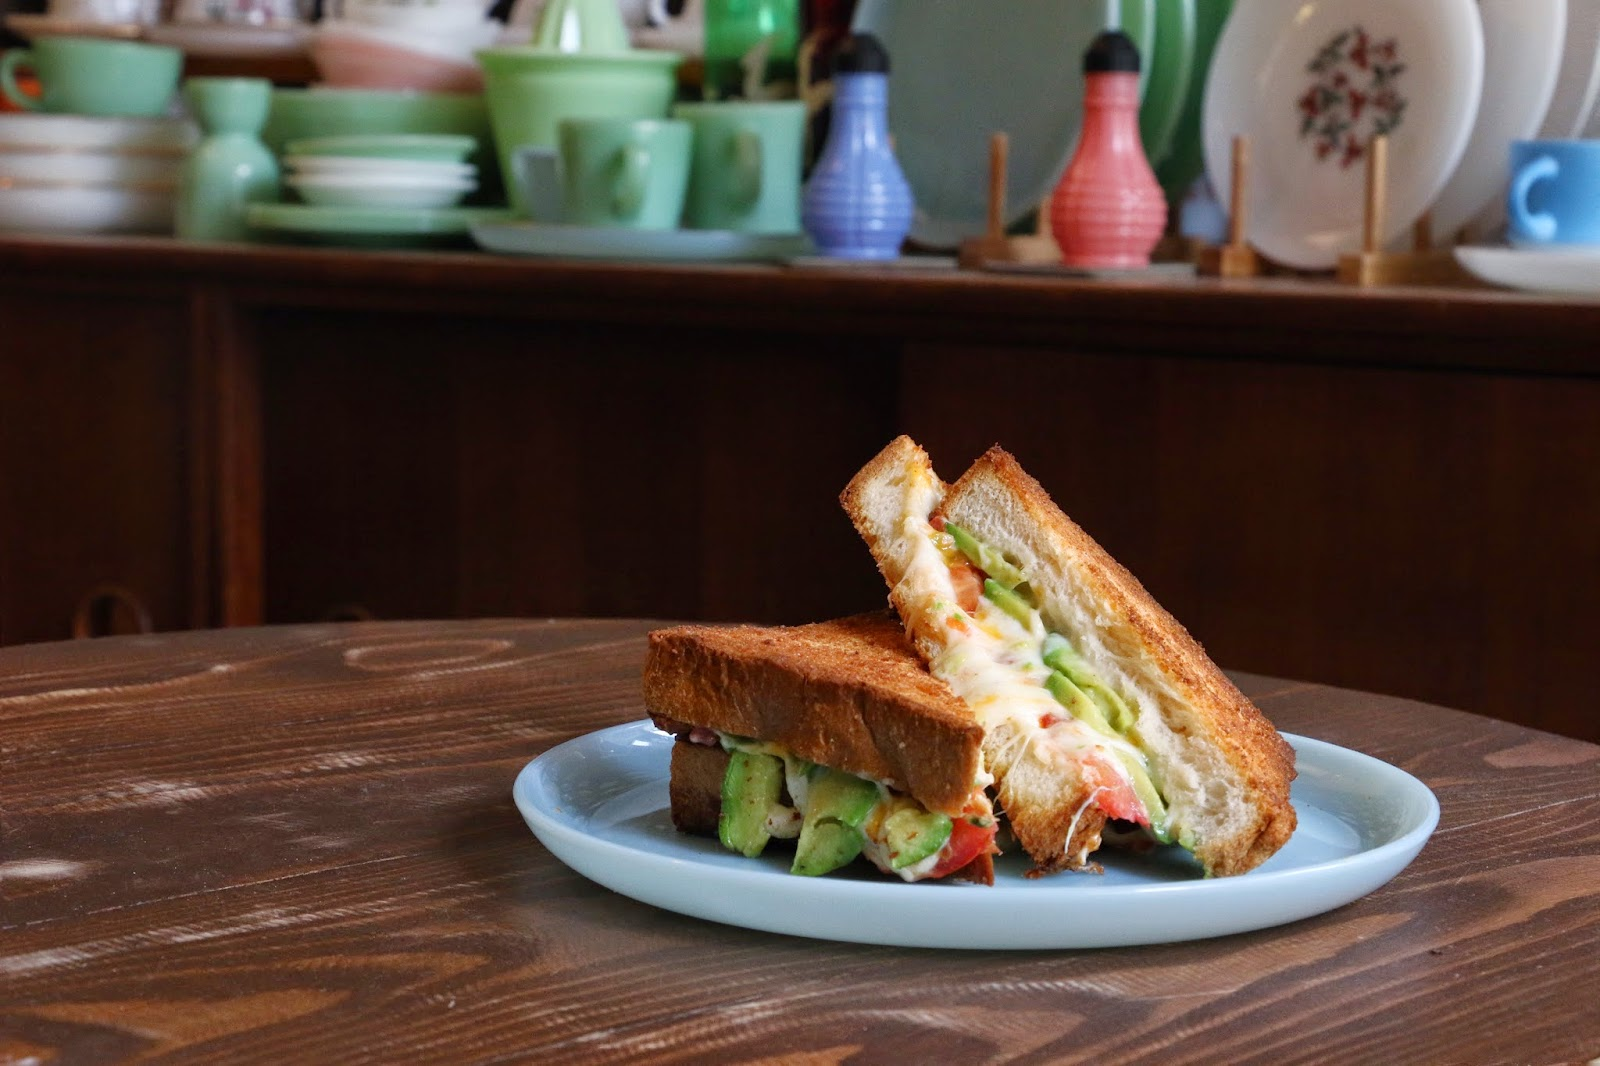 Artisan Garden Cafe, Sai Ying Pun, Grilled Cheese Avocado Sandwich